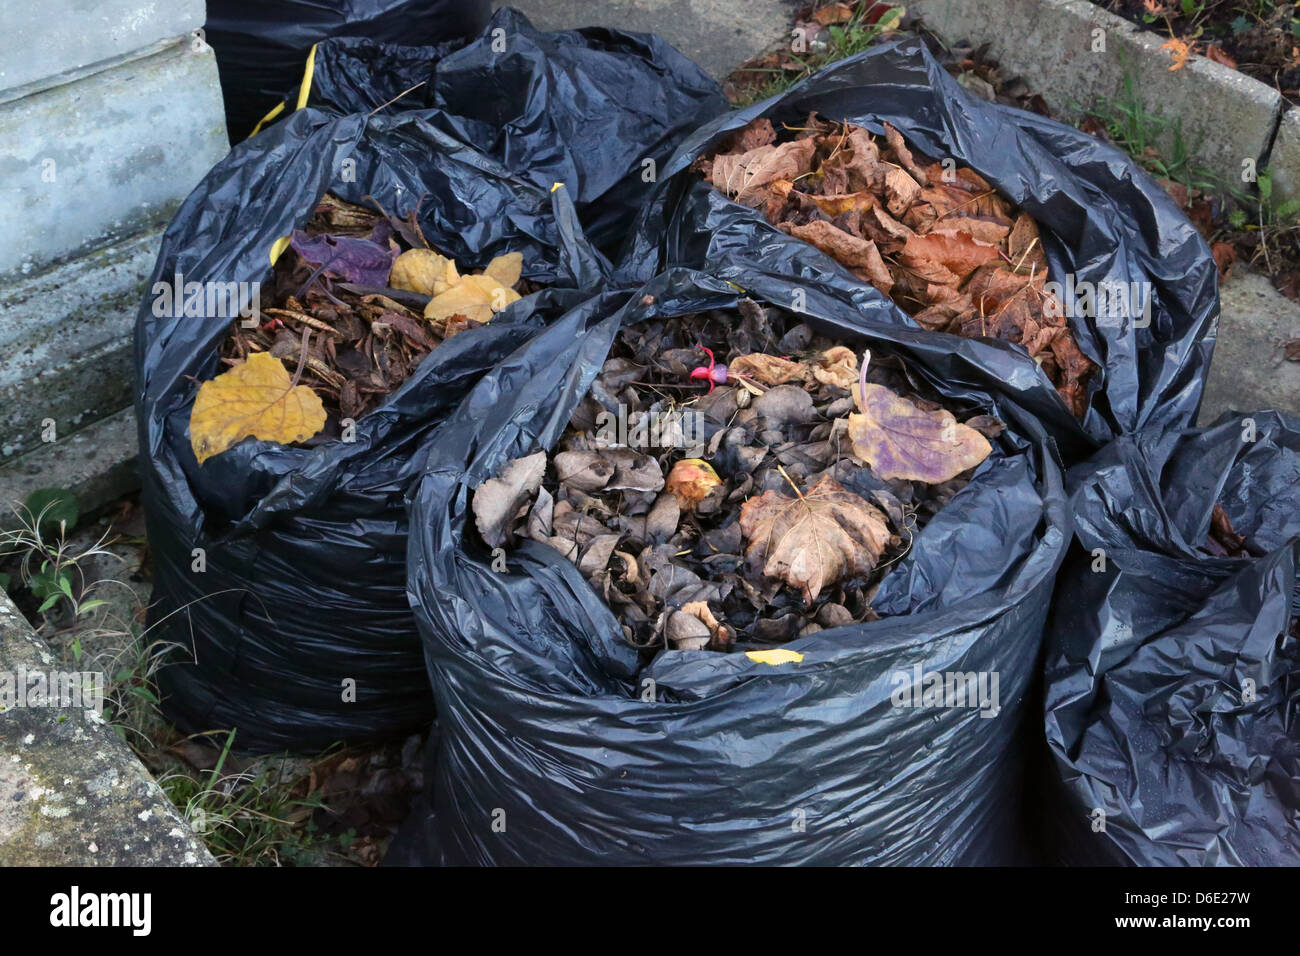 Plastic sacks of Leaves to make Leafmould In Garden Stock Photo